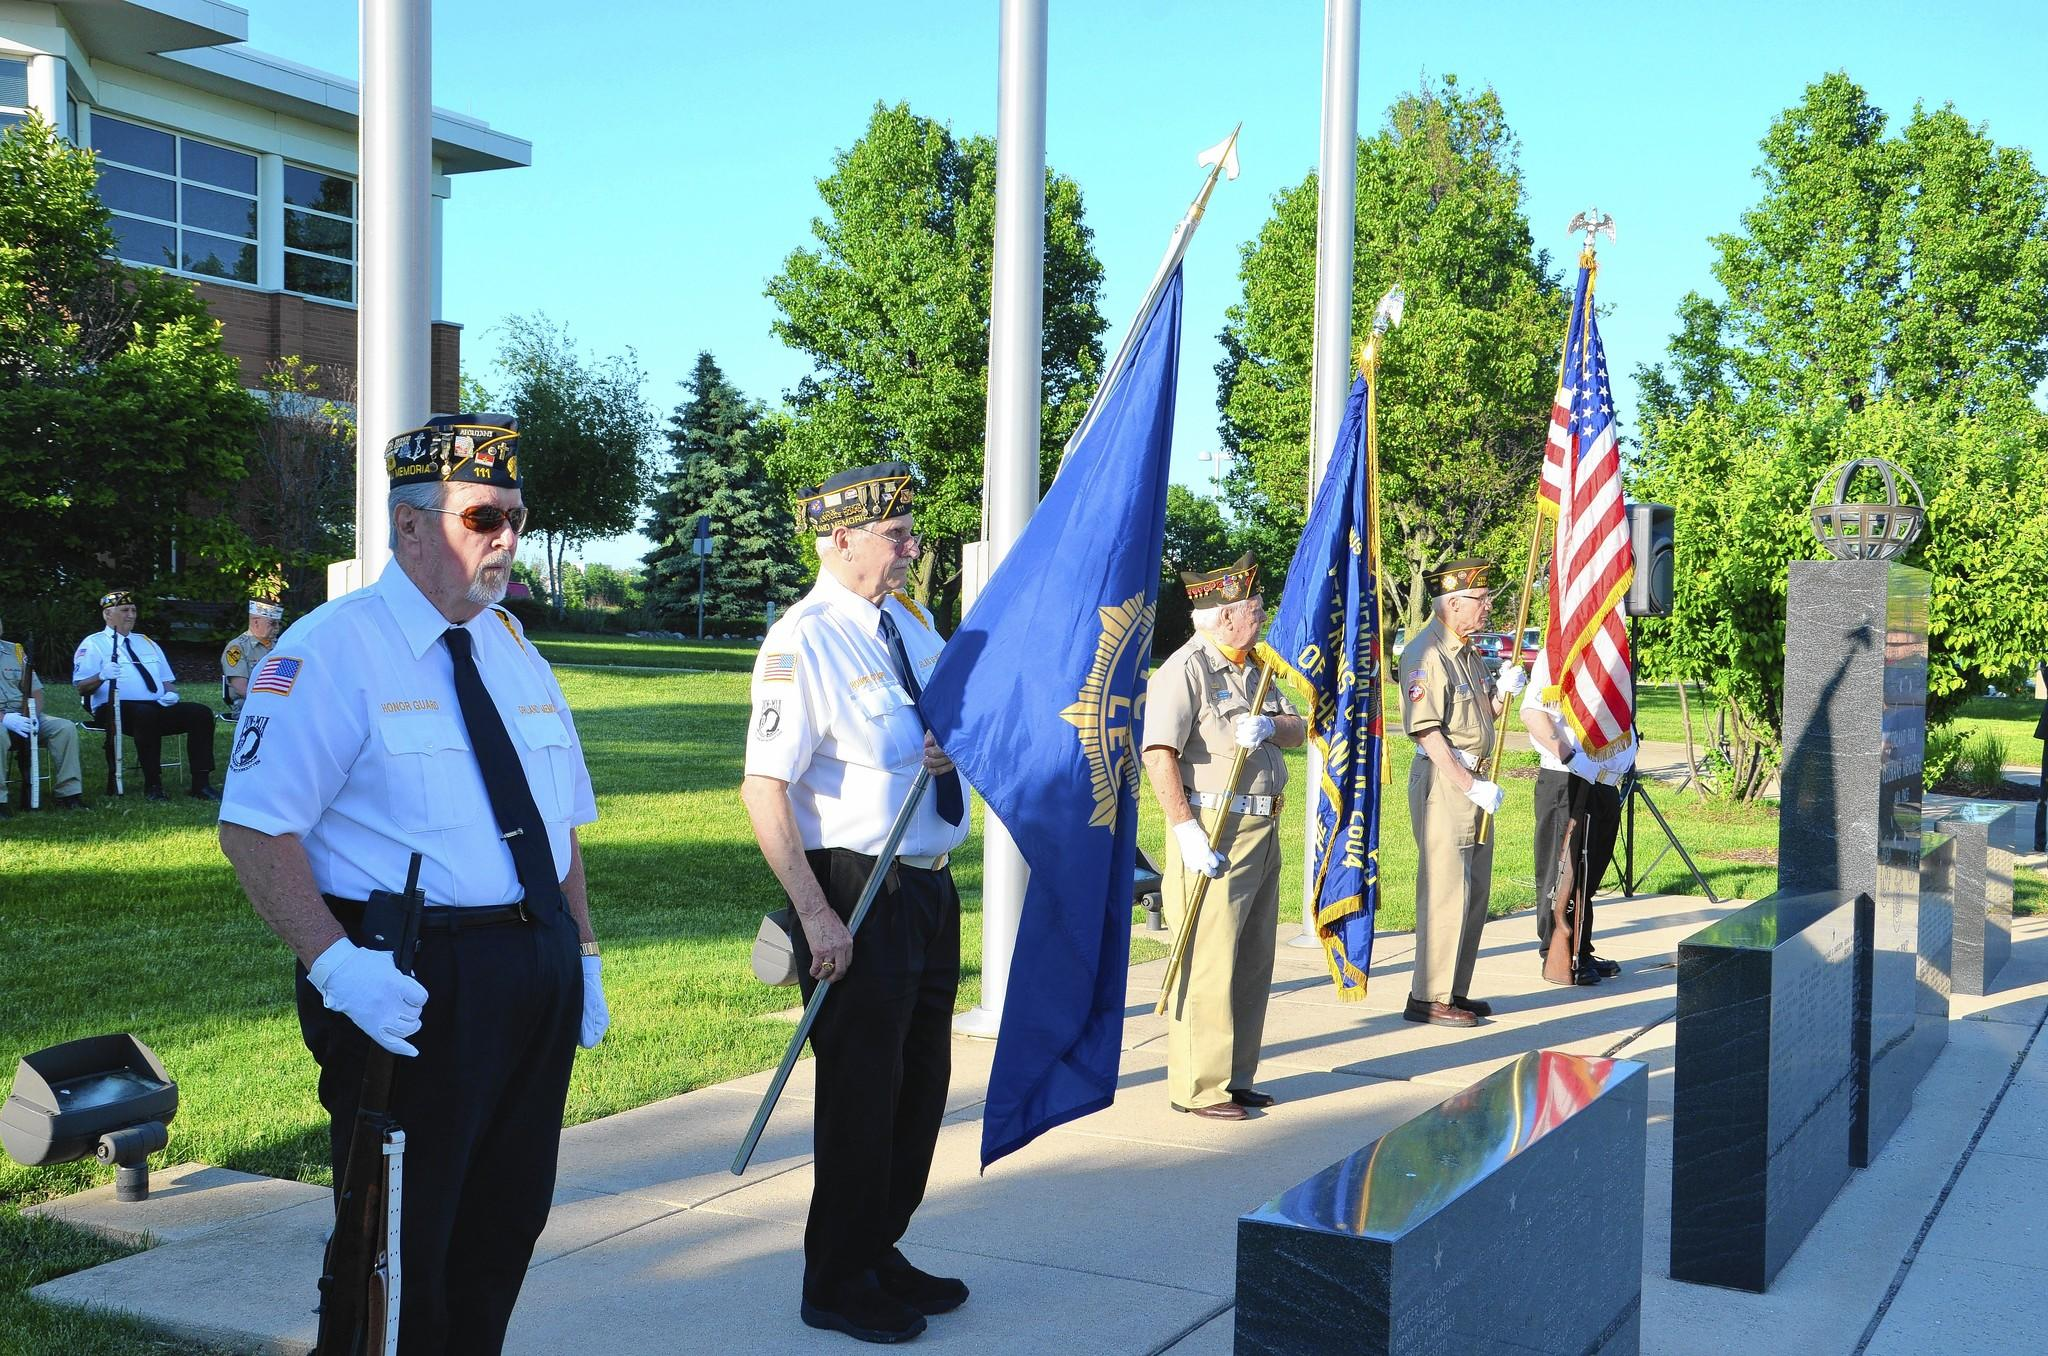 At the Orland Park Veterans' Memorial Friday, the 70th anniversary of D-Day, Orland Park honored area World War II veterans.